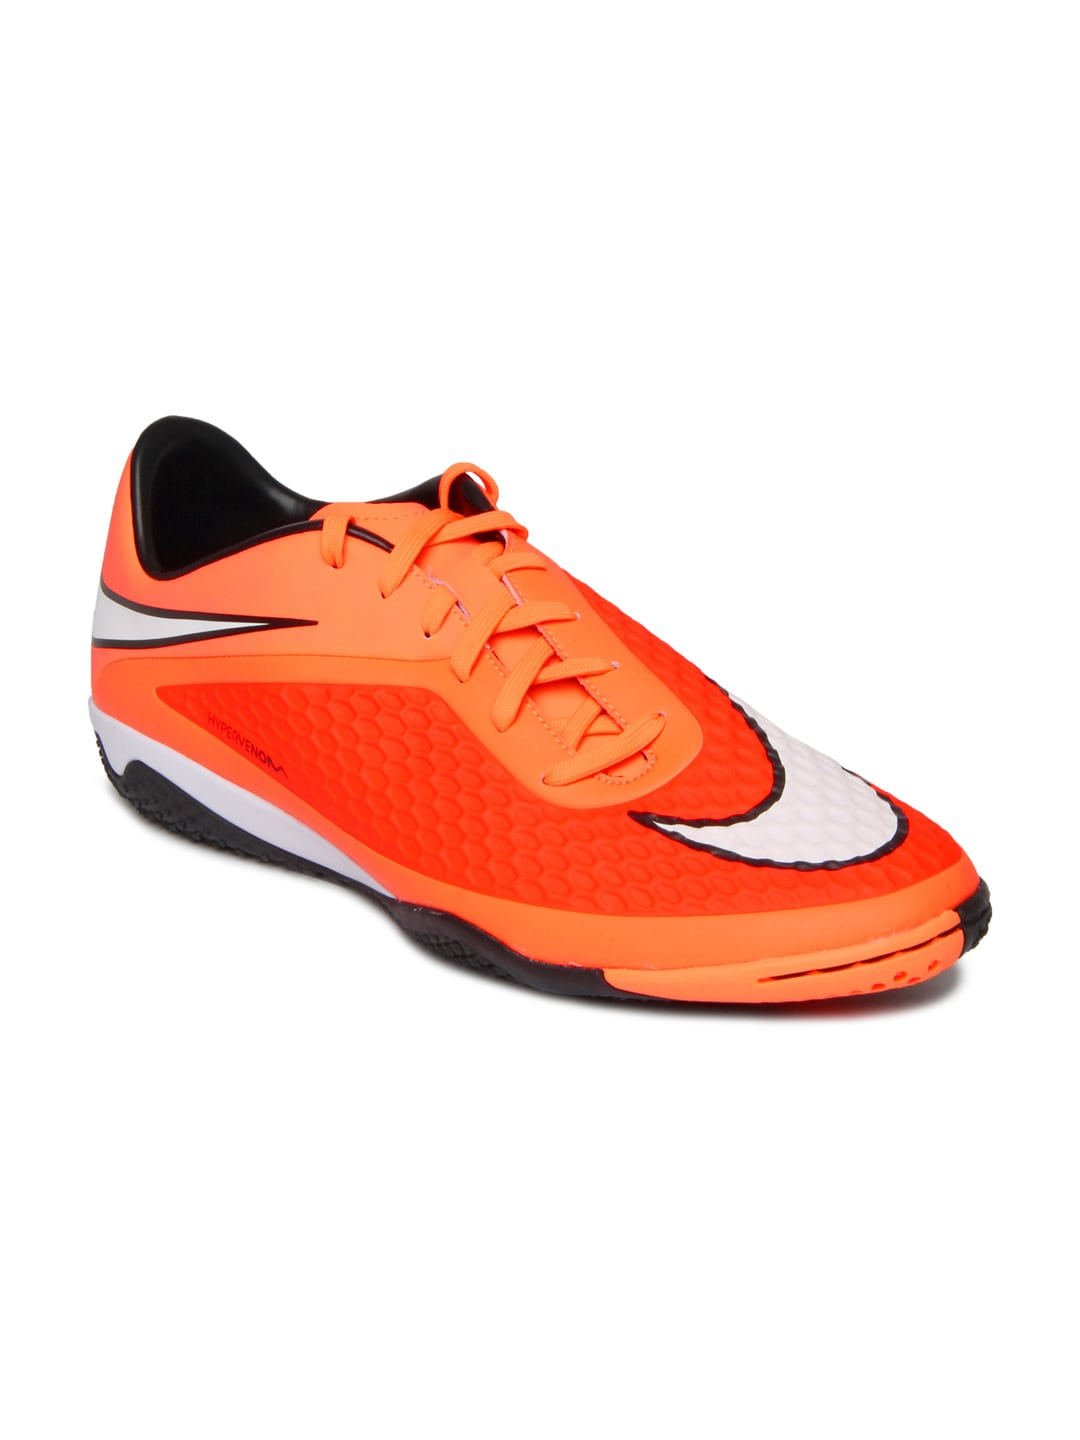 Buy Nike Turf Shoes Online India